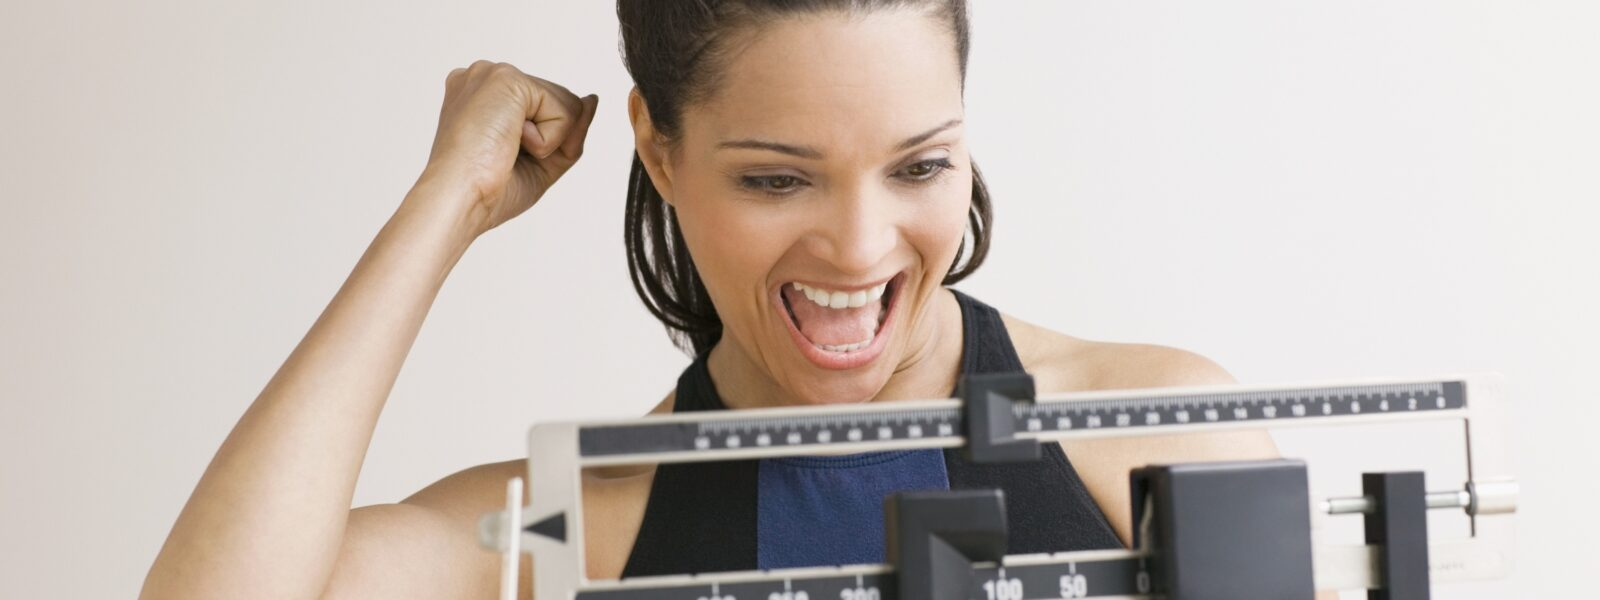 Advanced Wellness Announces Frequently Asked Questions About Medically Supervised Weight Loss